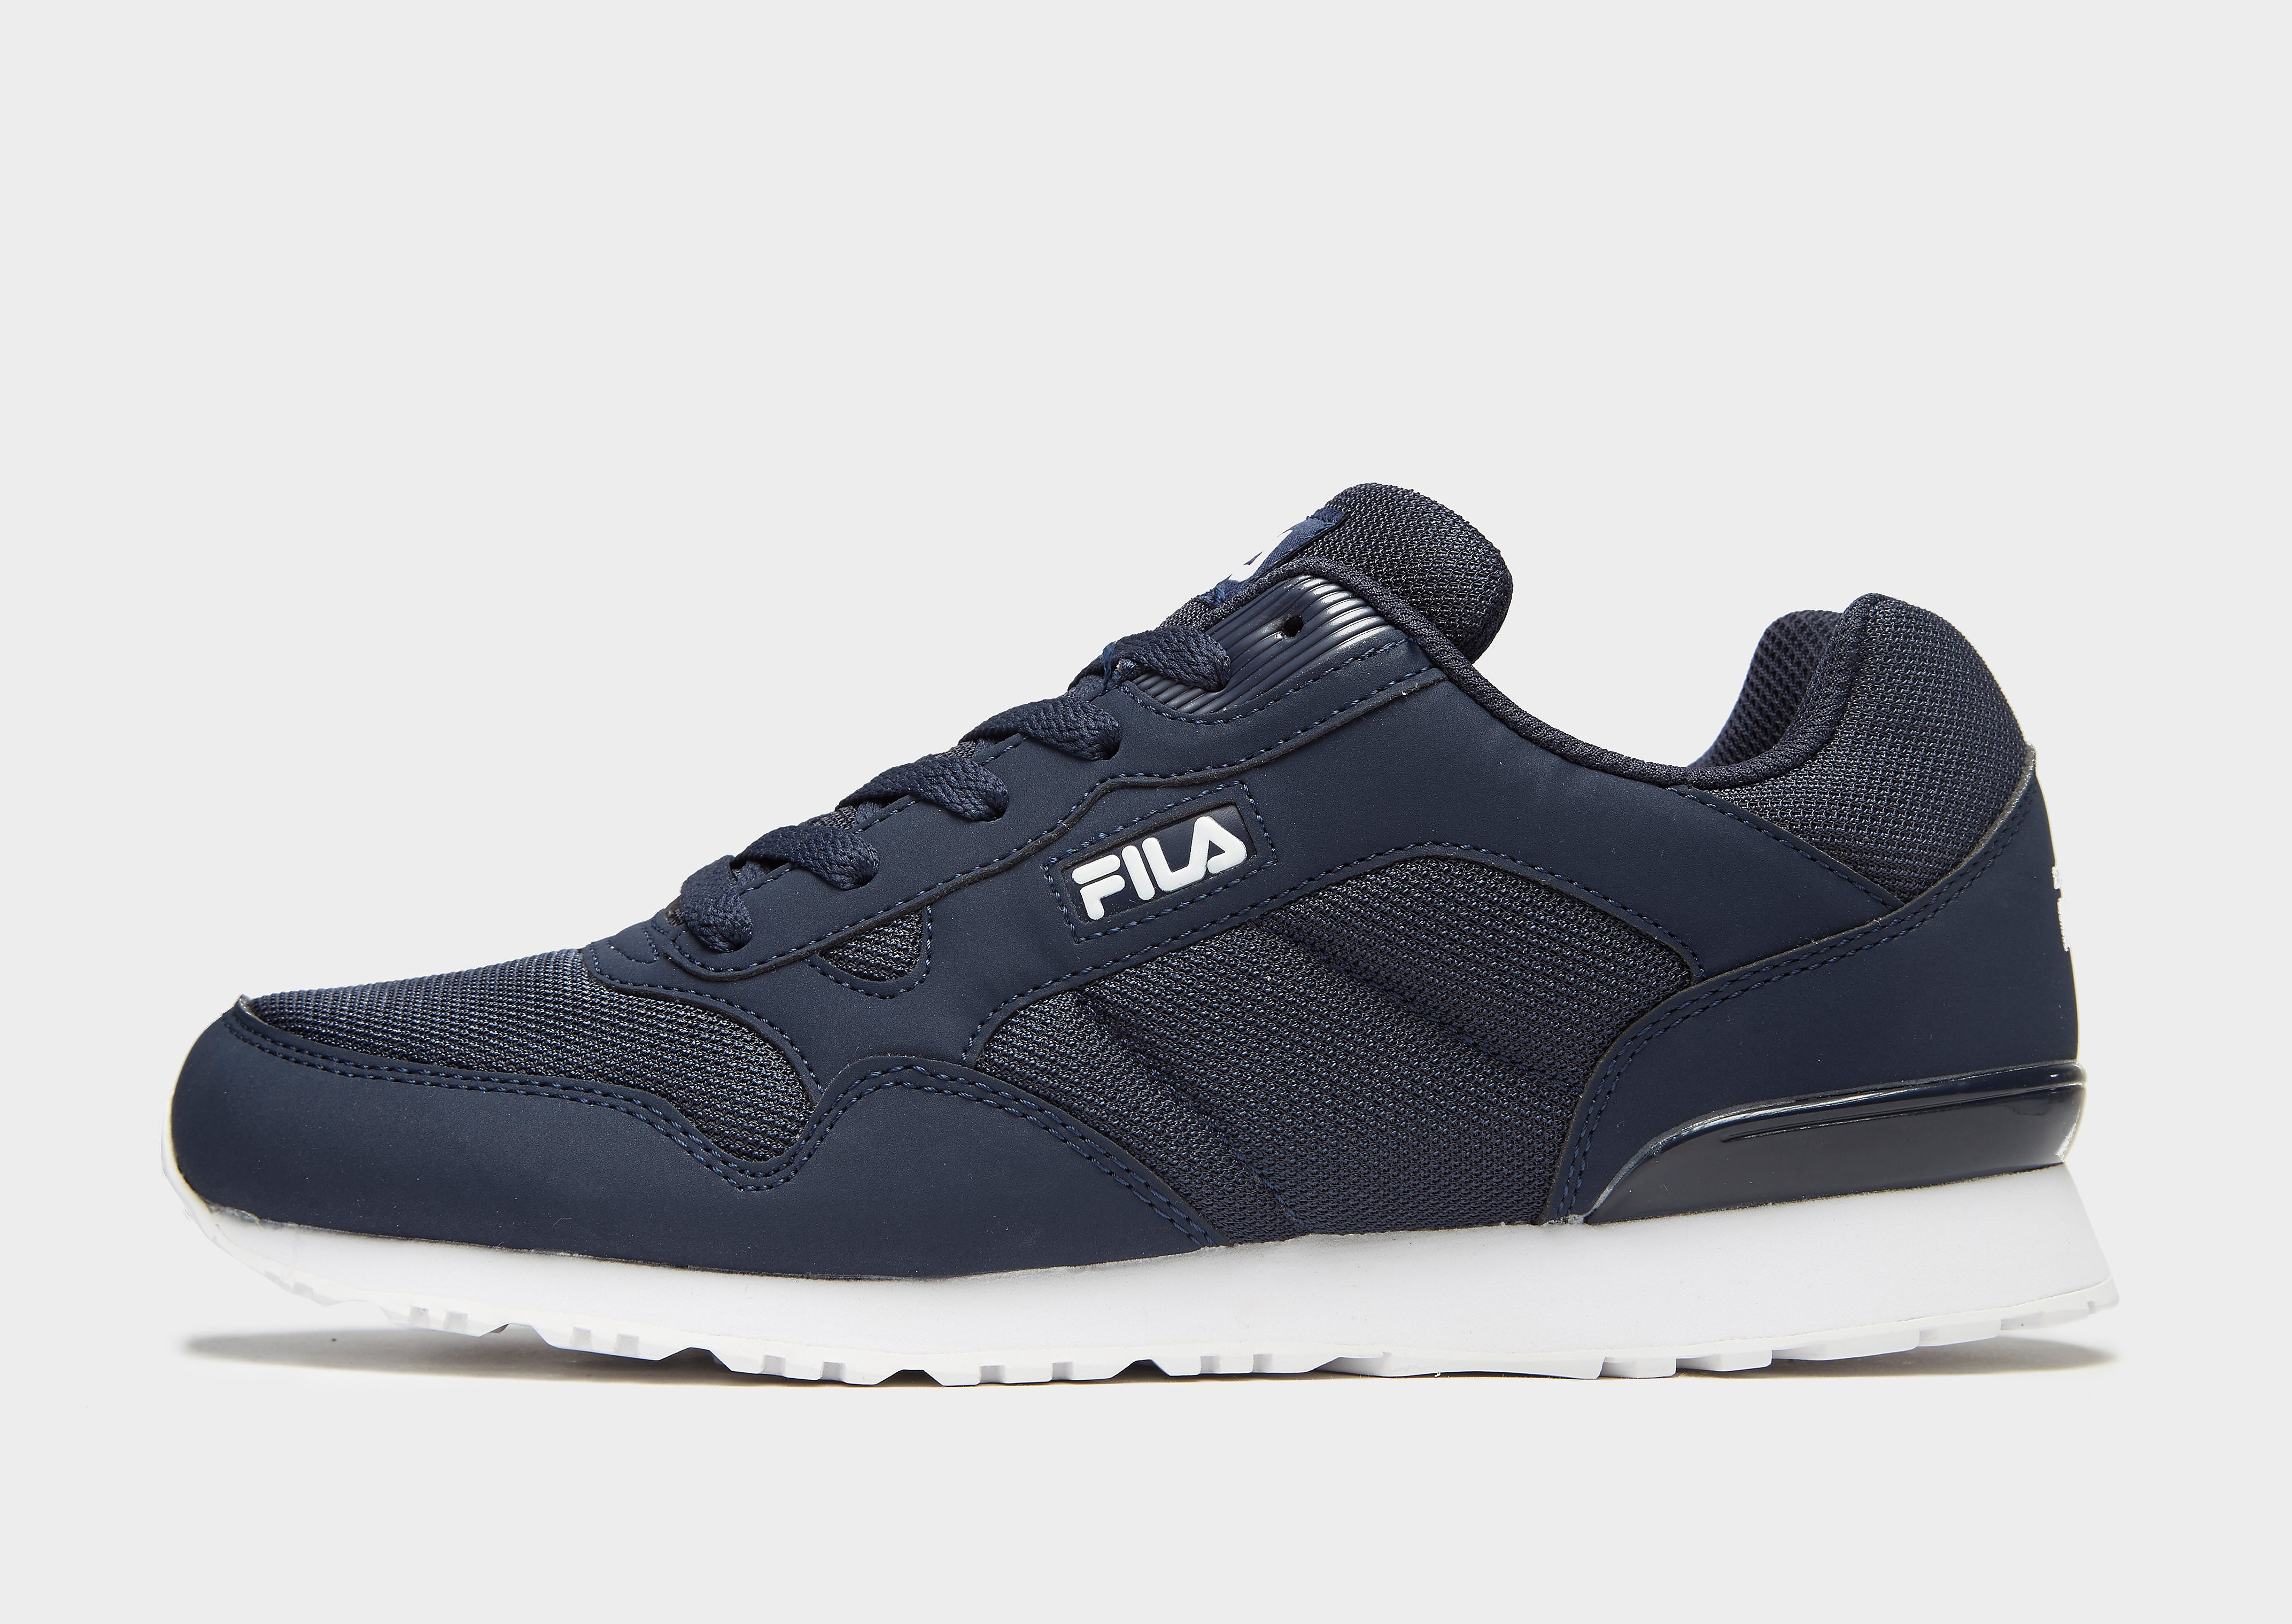 Fila Cress Knit - Only at JD